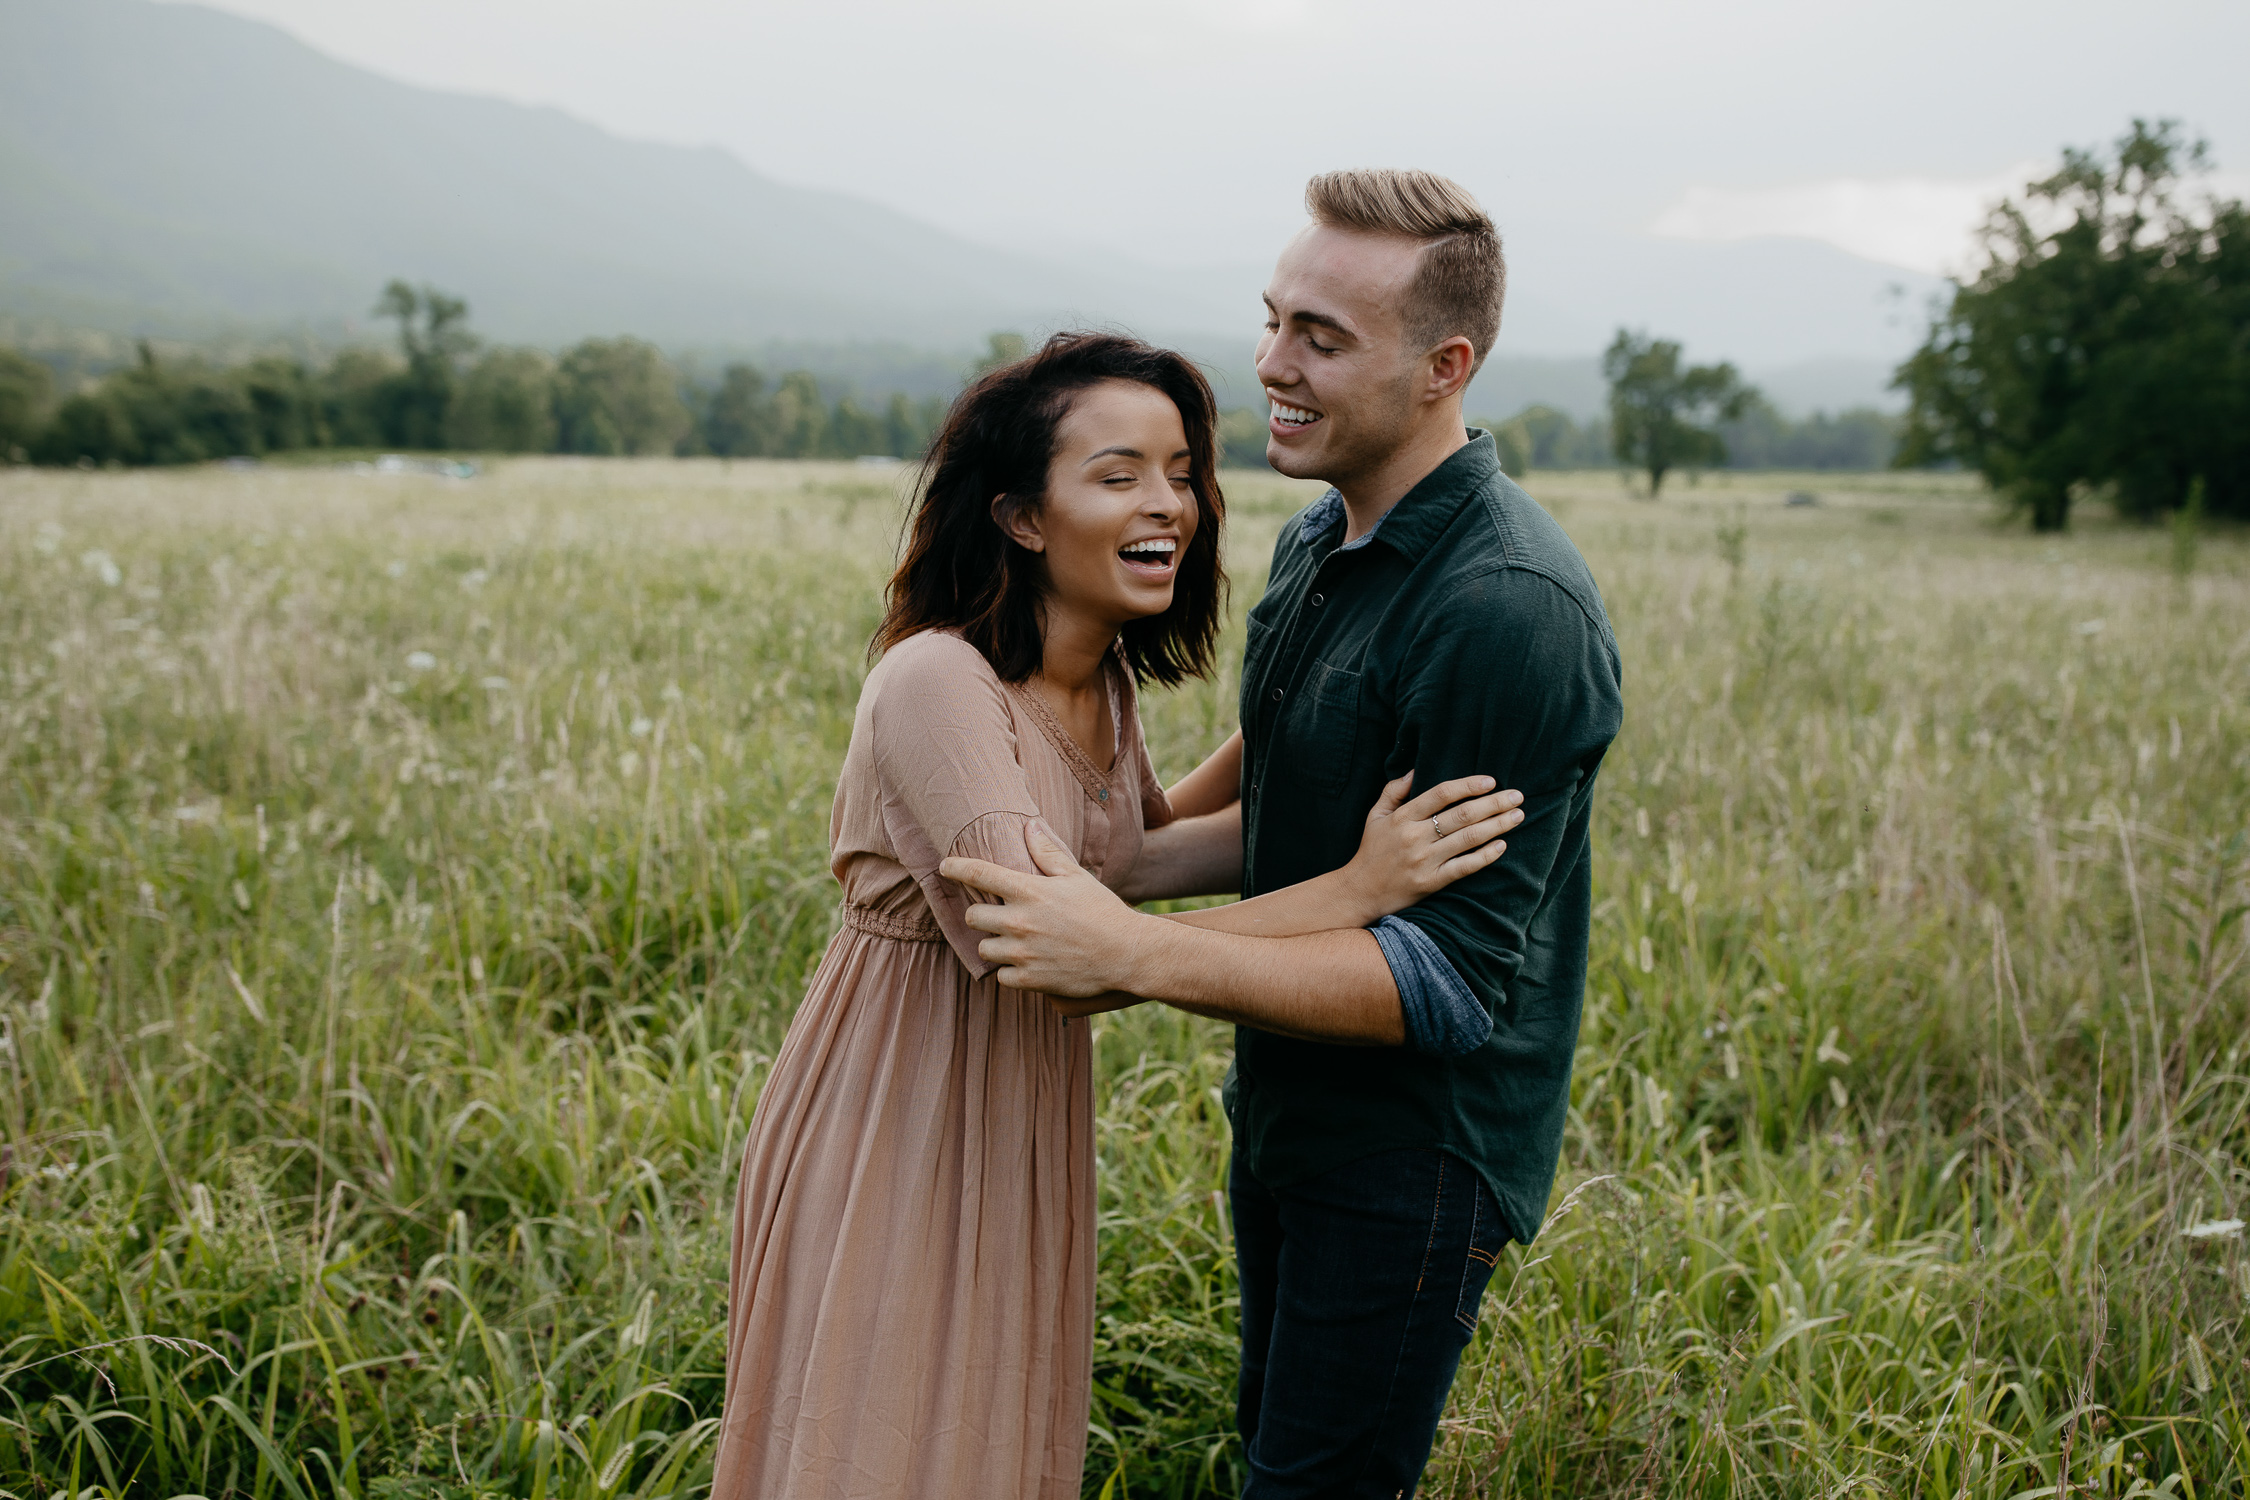 ariannamtorres and isaac engagement session at cades cove smoky mountains elopement-9.jpg